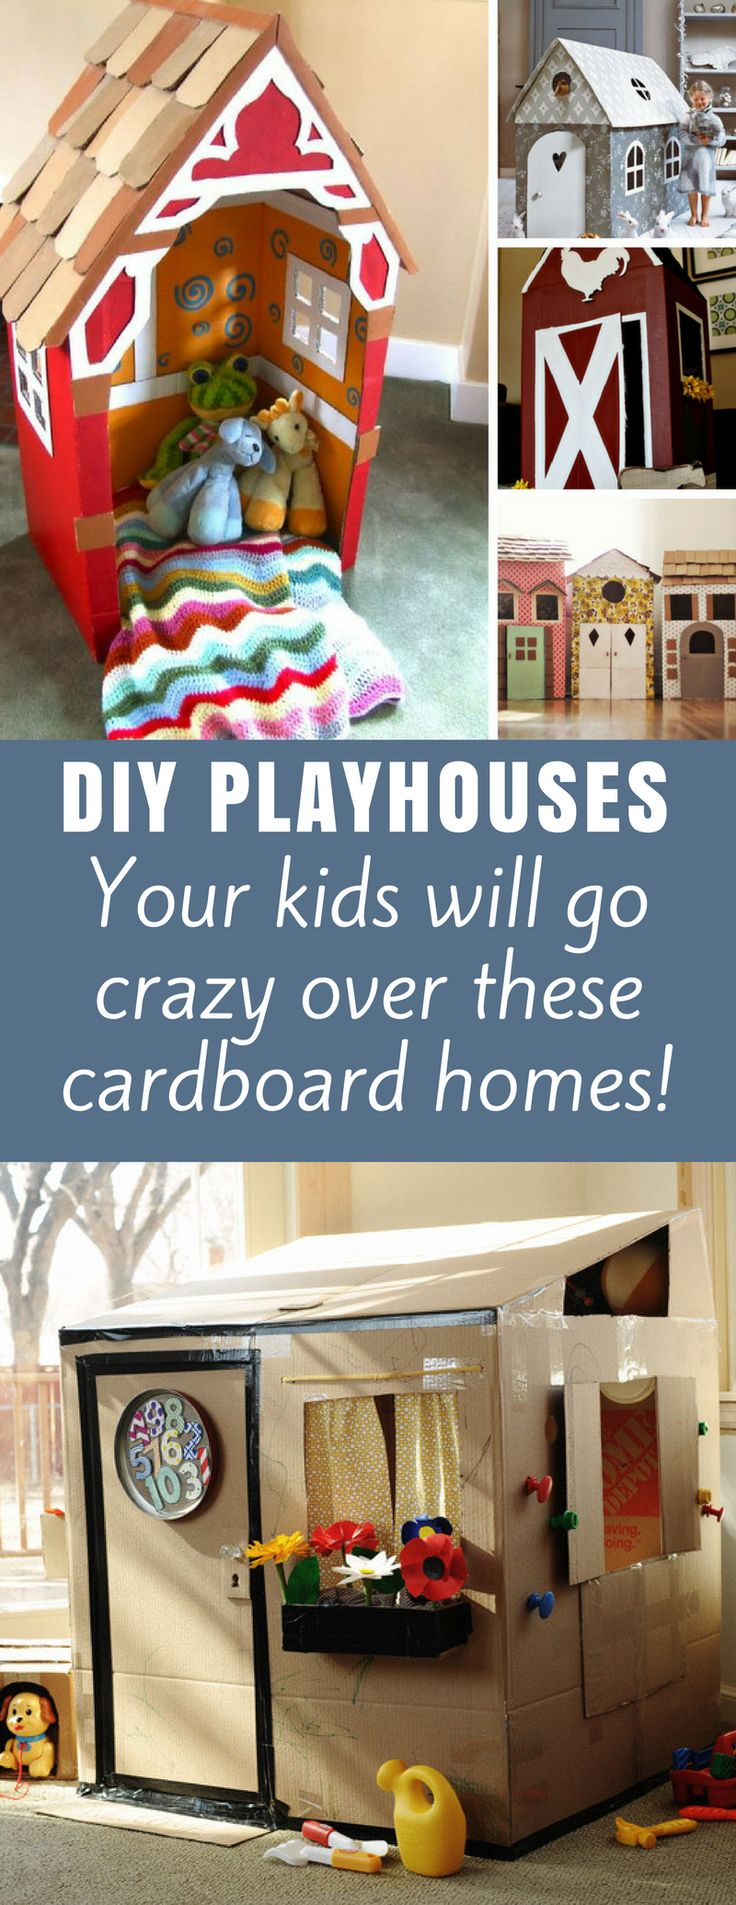 DIY Cardboard Playhouses - they always say kids love the box most in a gift - and they'll go nuts over these cardboard box houses they can play in all day! #DIY #kids  #crafts